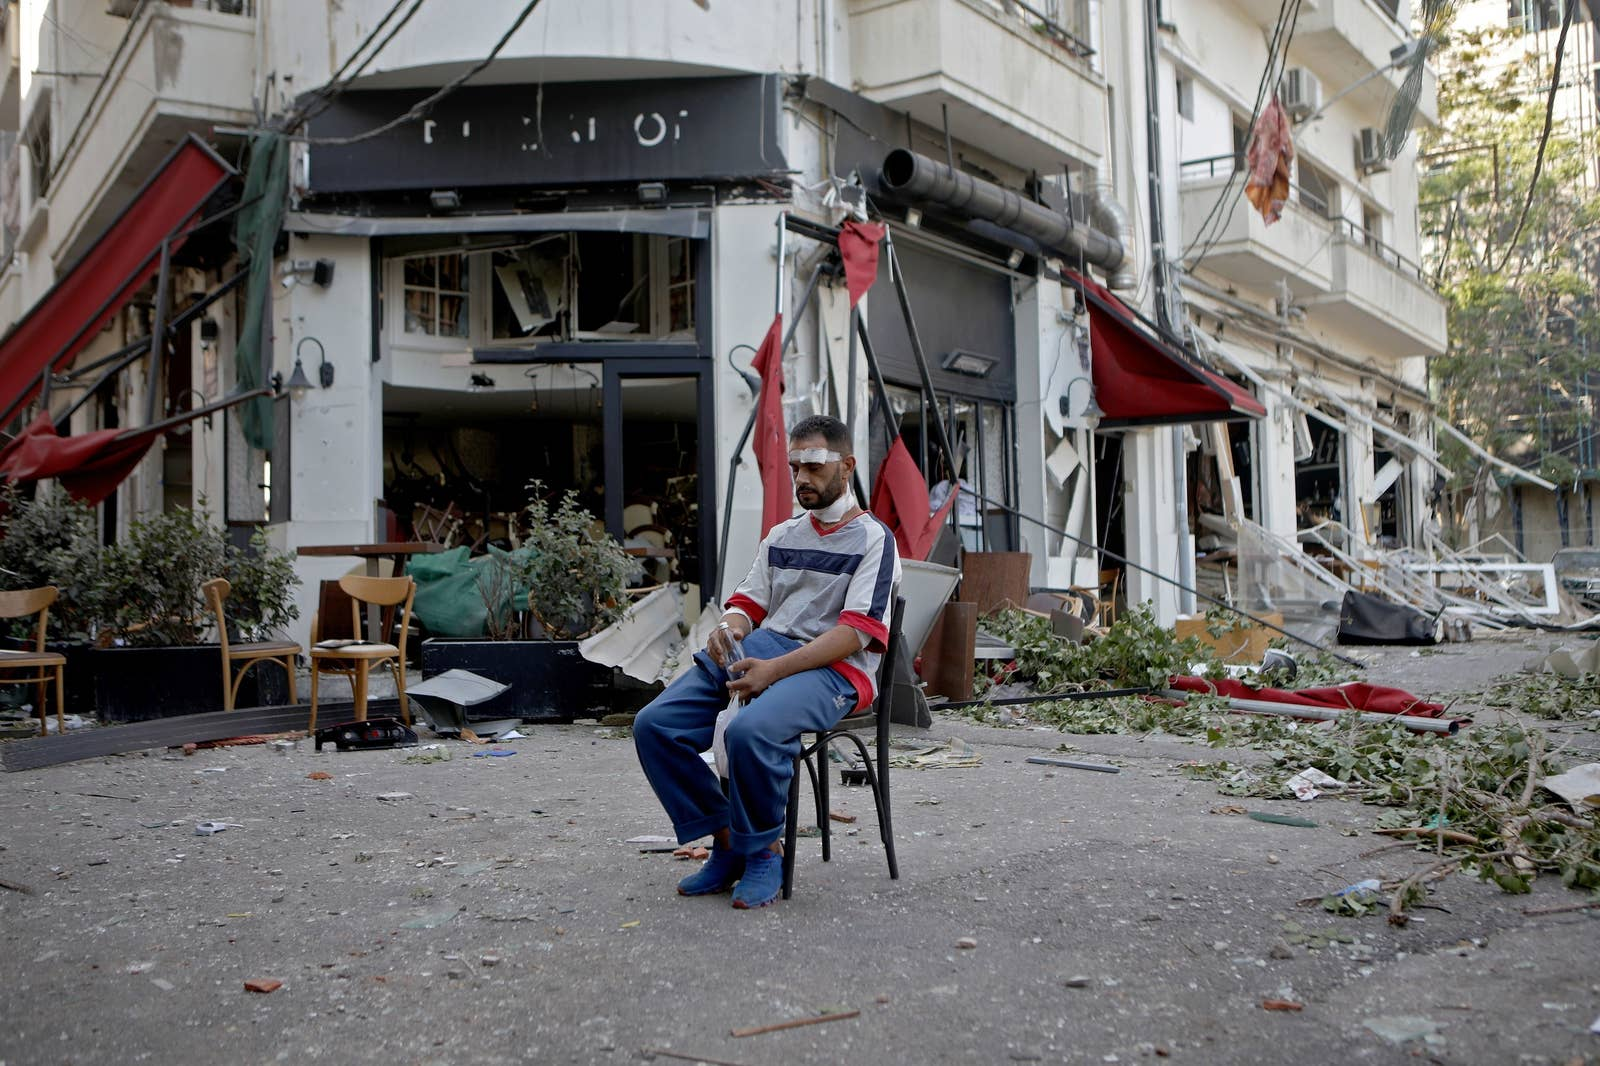 A man with a bandaged head sits in the middle of a destroyed street